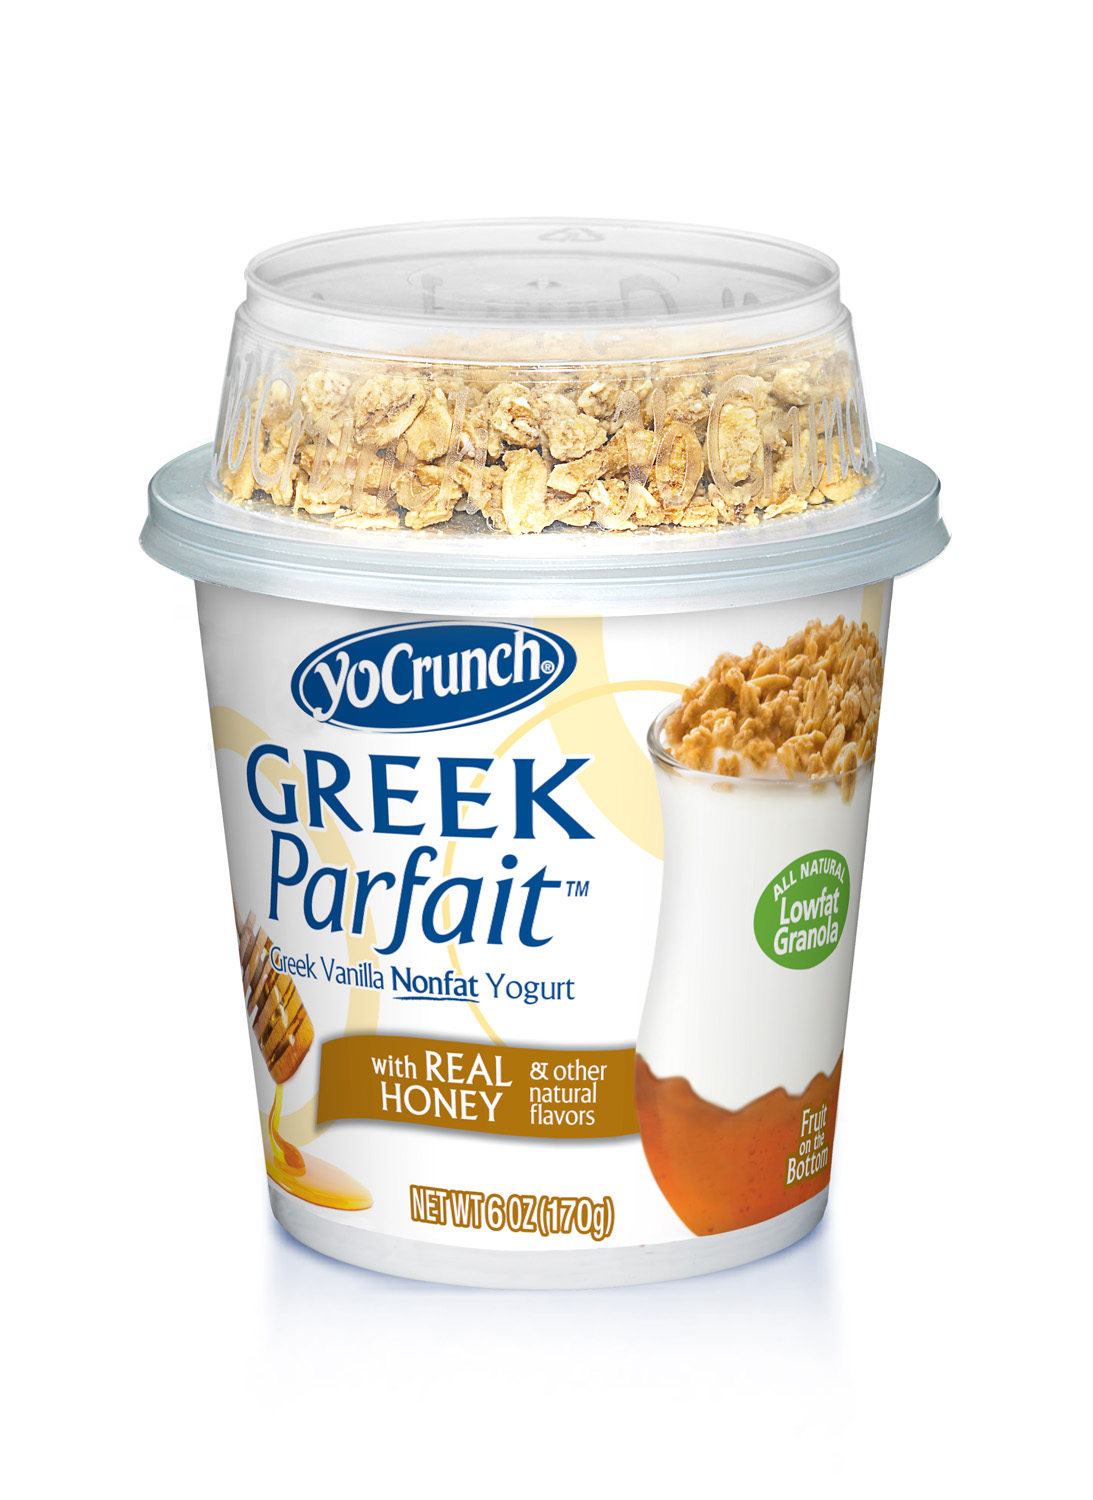 Greek Parfait - Honey